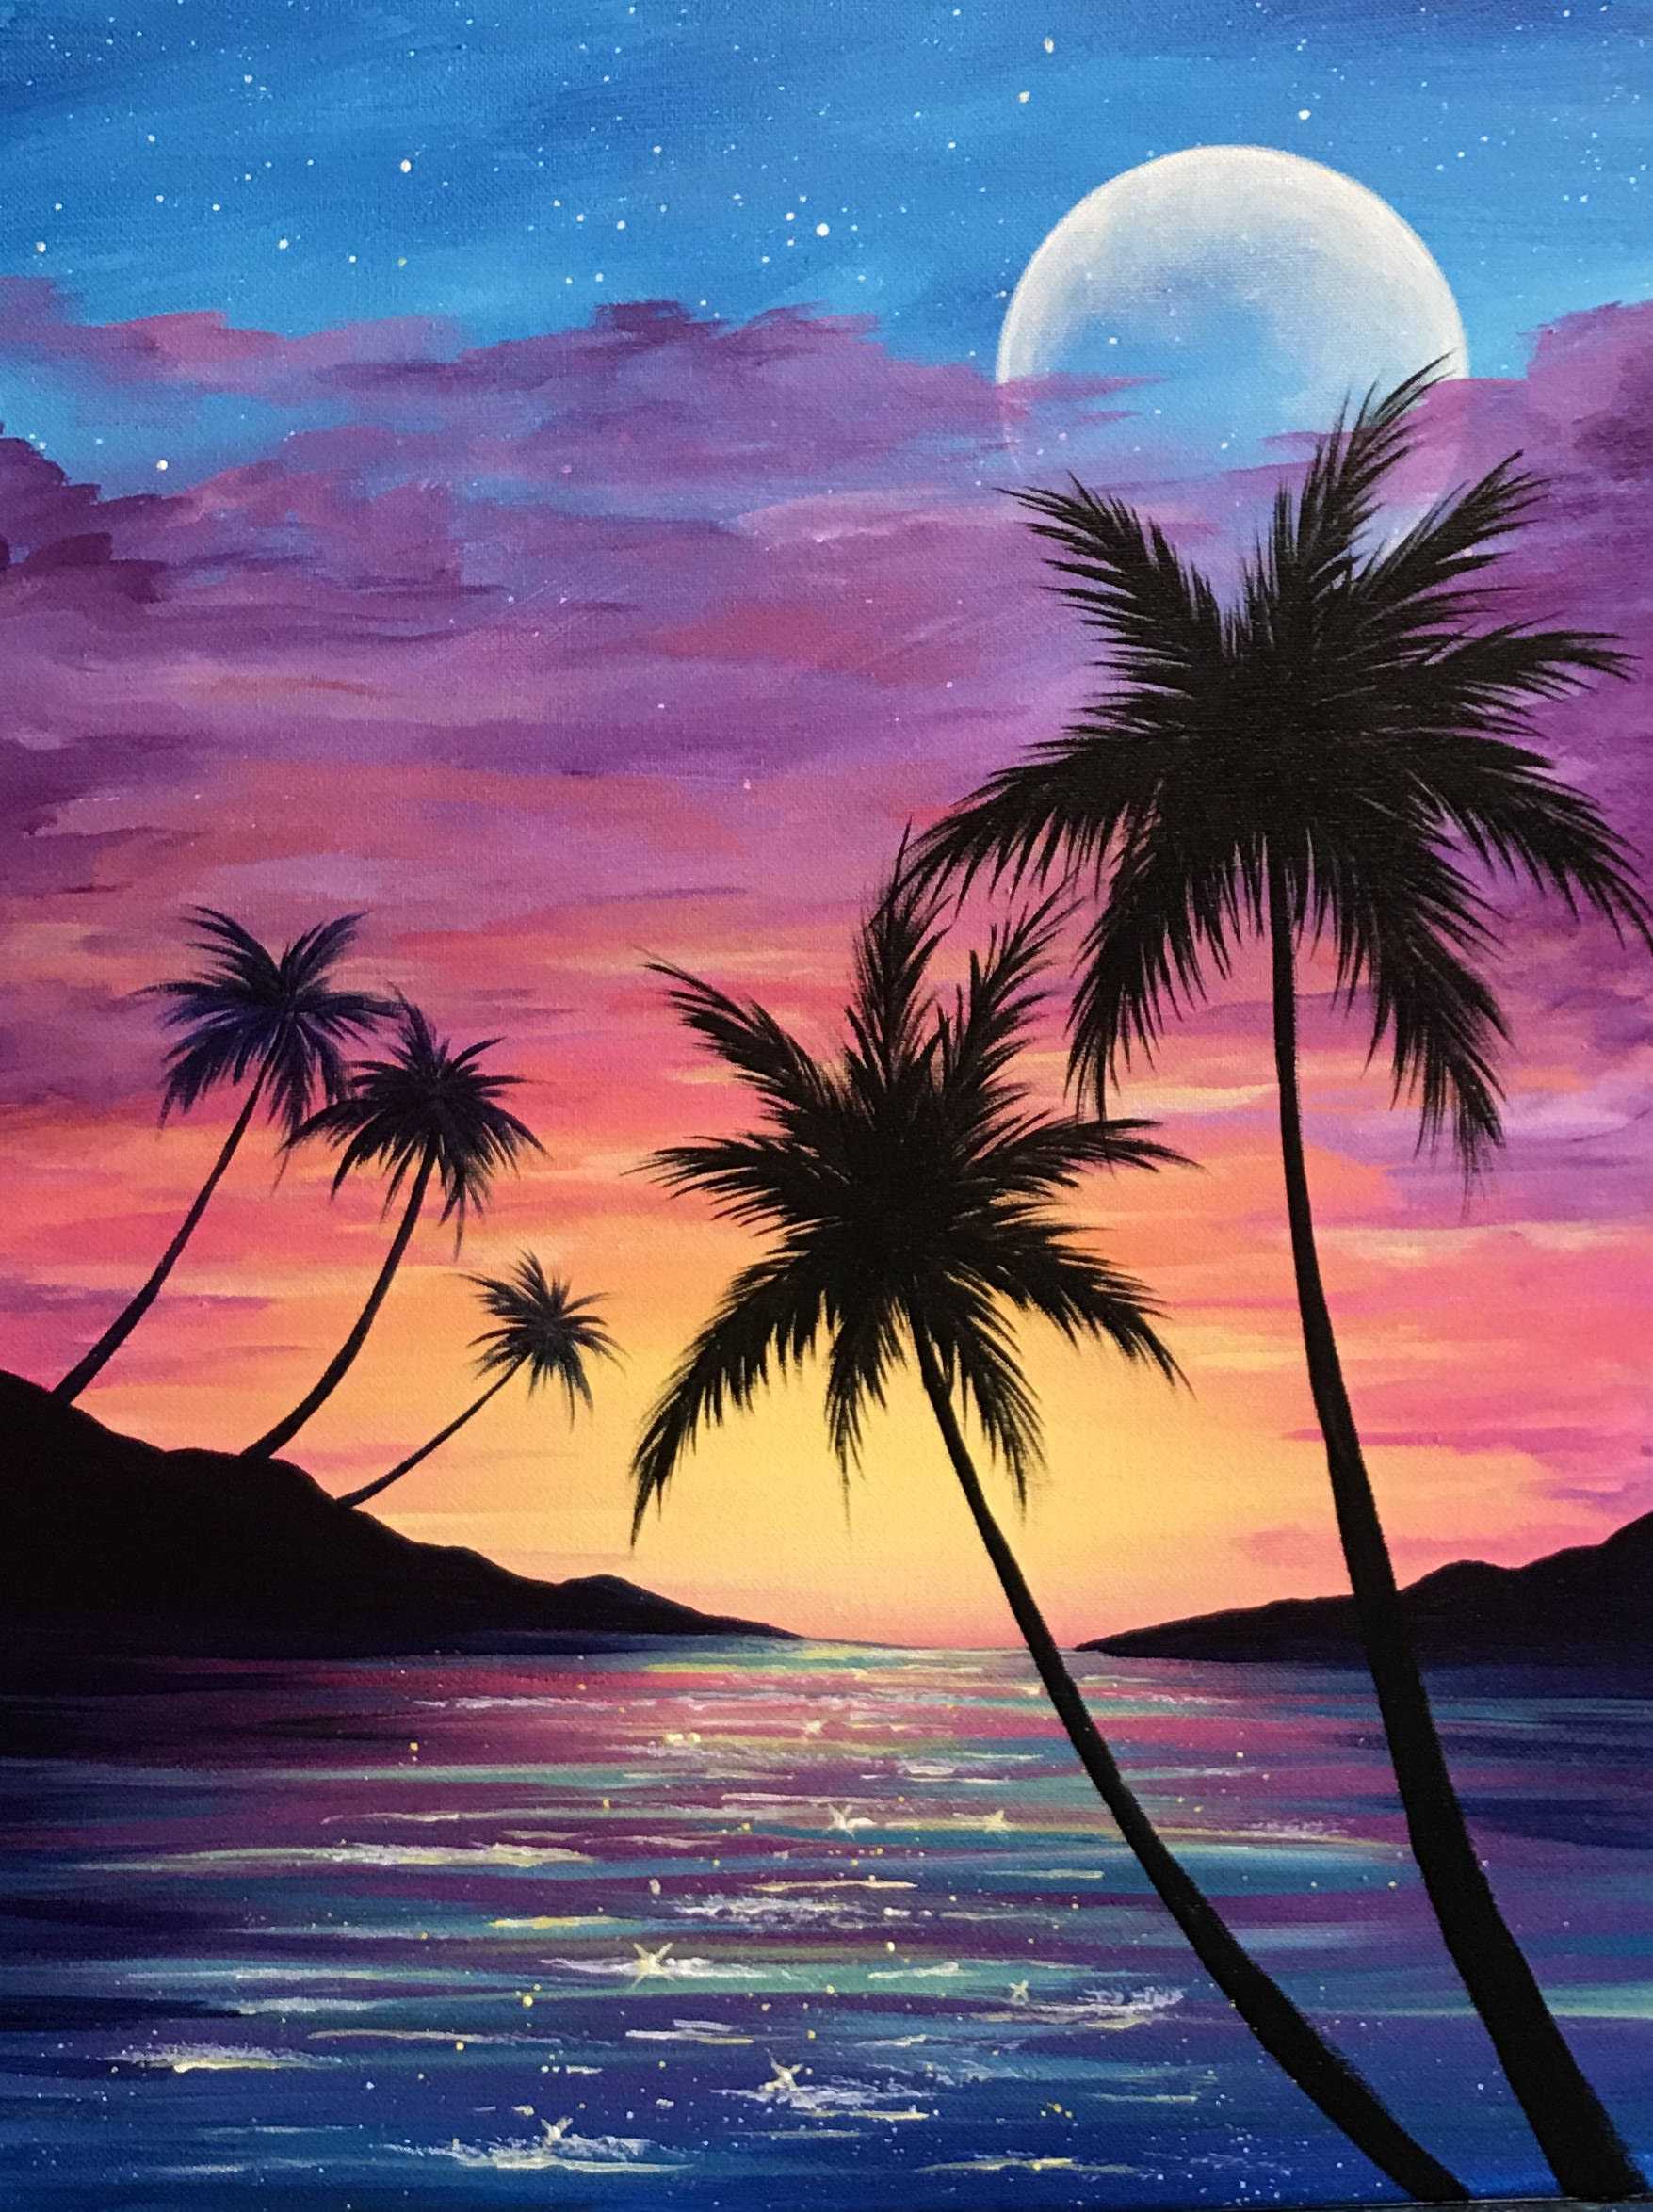 A Sunset Palm Paradise experience project by Yaymaker